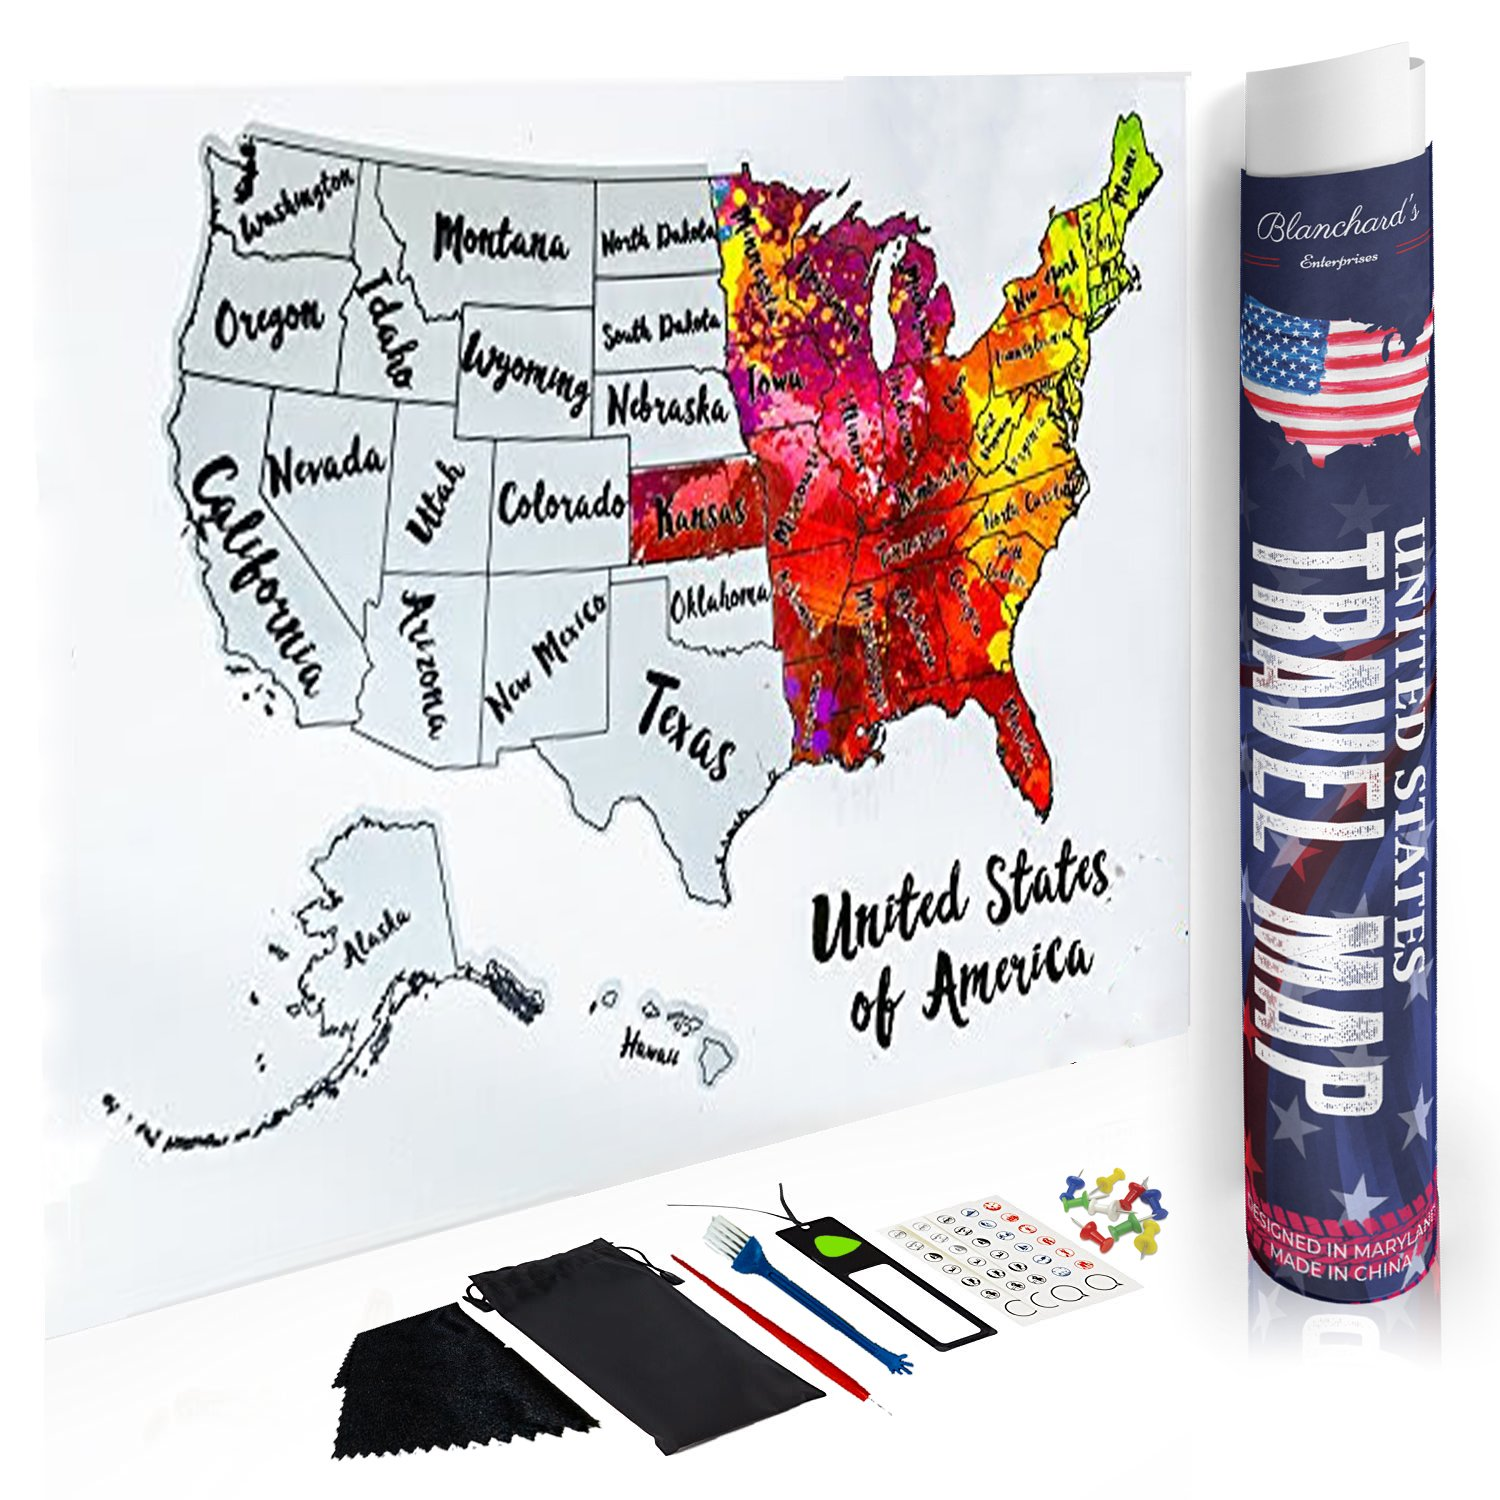 Blanchard's Enterprises Scratch Off Map of The United States - Beautiful Watercolors - Scratch Off Silver Foil to Reveal USA Scratch Map 12x18 US Map for Travelers - Full Accessory KIT Included!